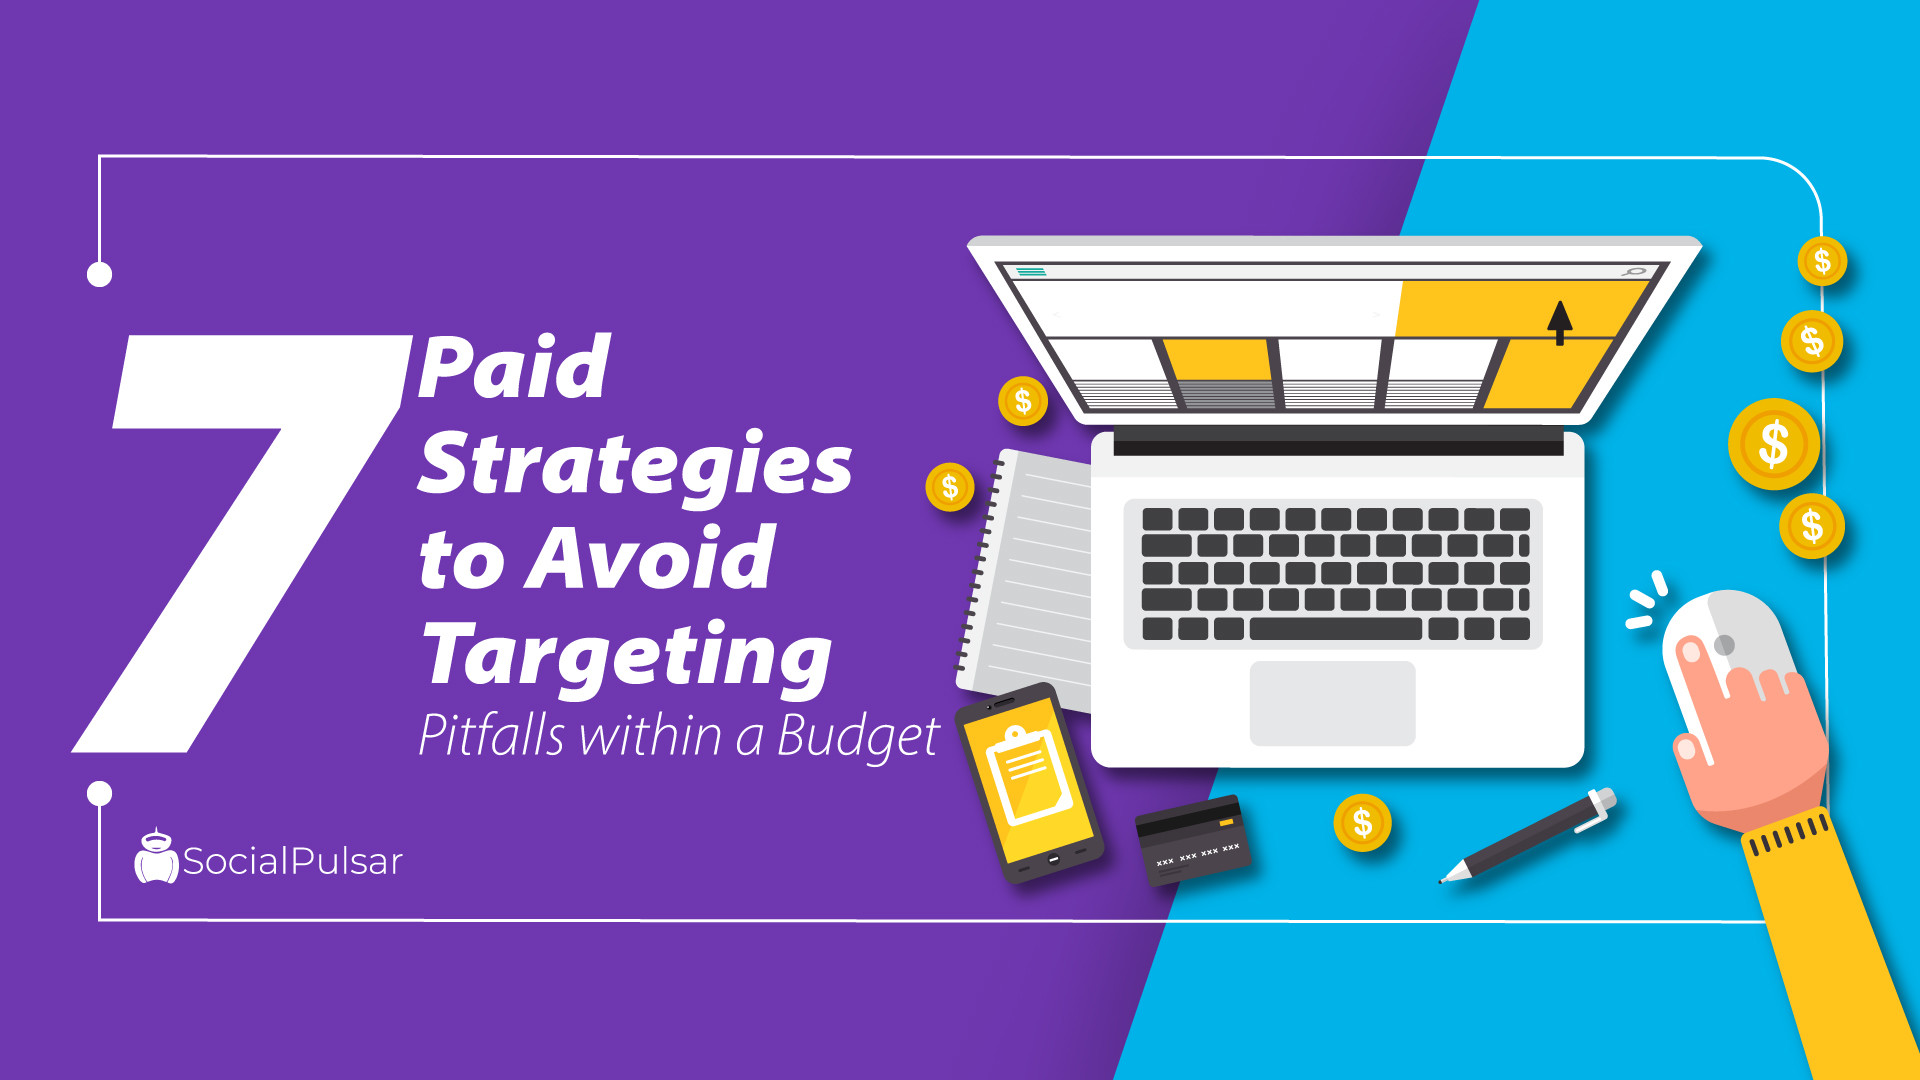 7 Paid Strategies to Avoid Targeting Pitfalls within a Budget